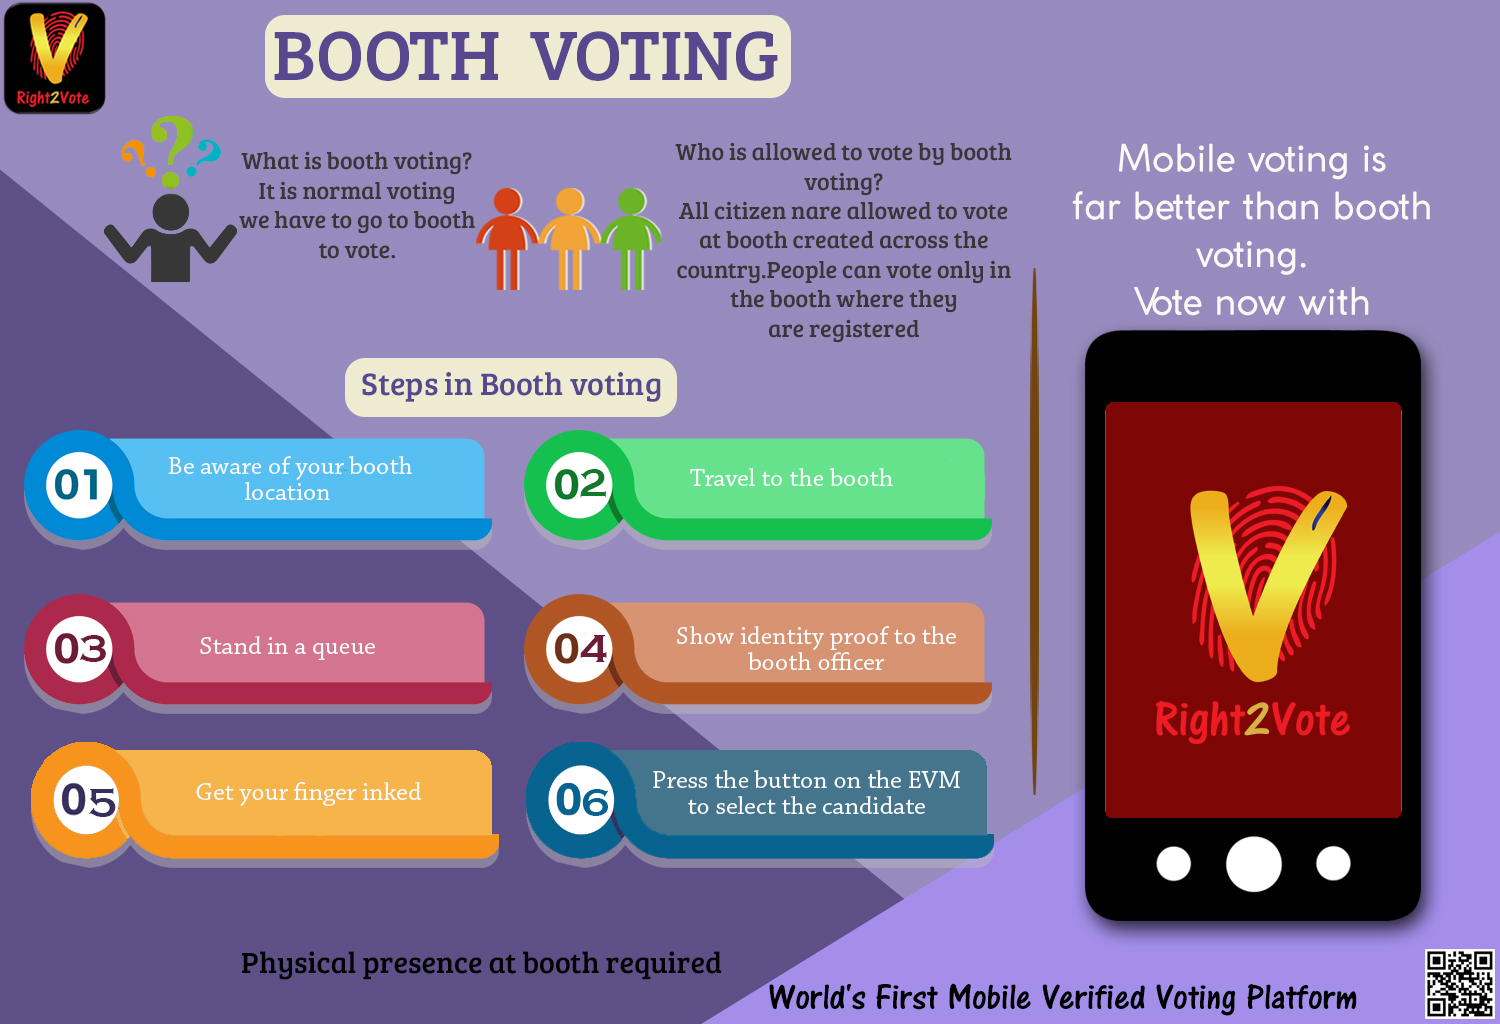 Booth Based Voting